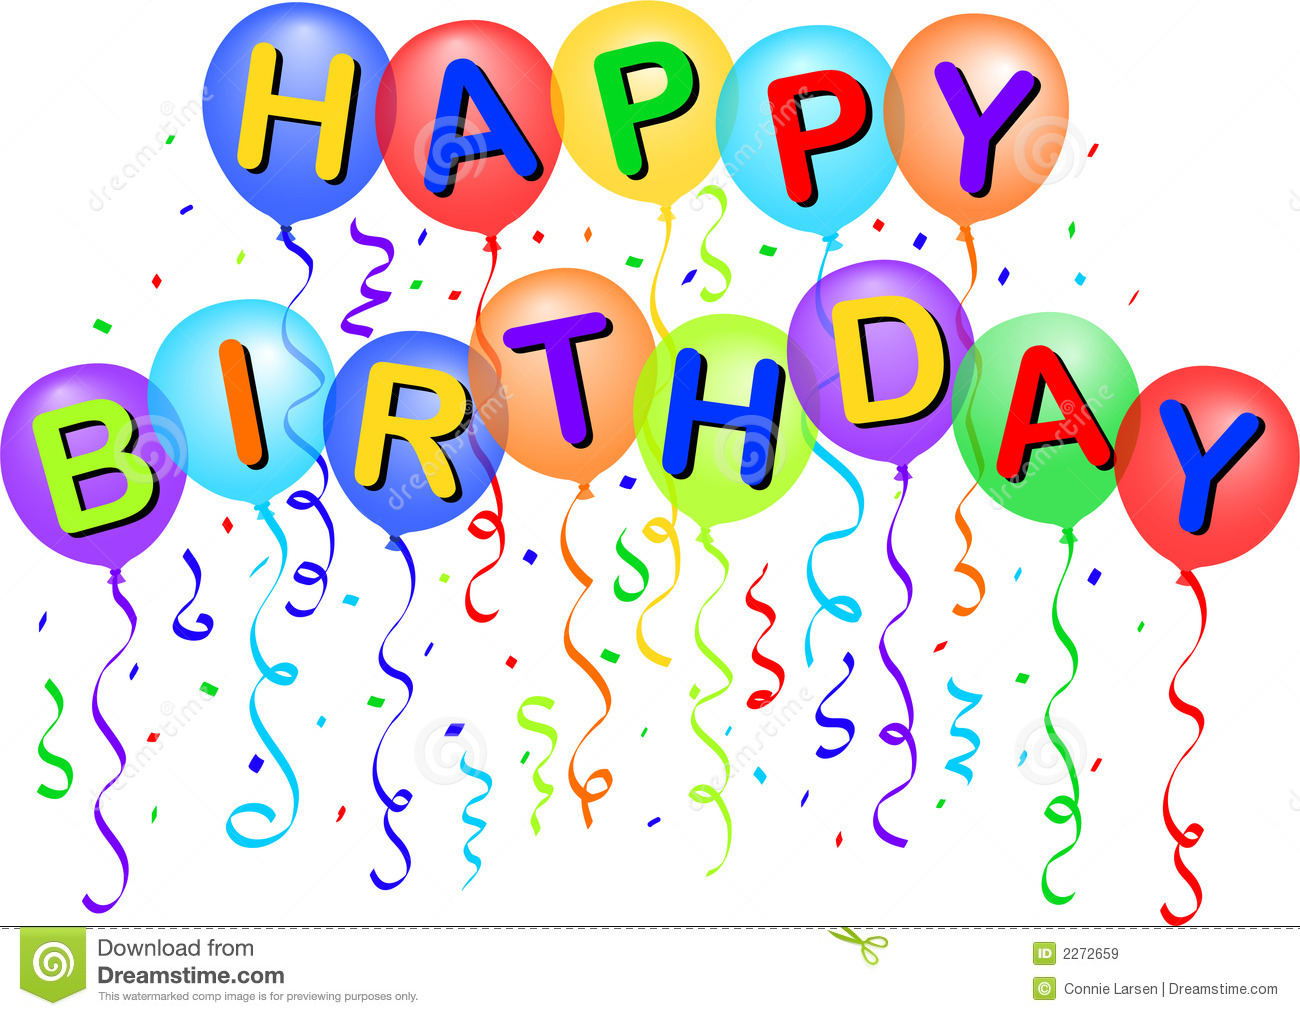 Happy Birthday Balloons/eps Royalty Free Stock Images - Image: 2272659